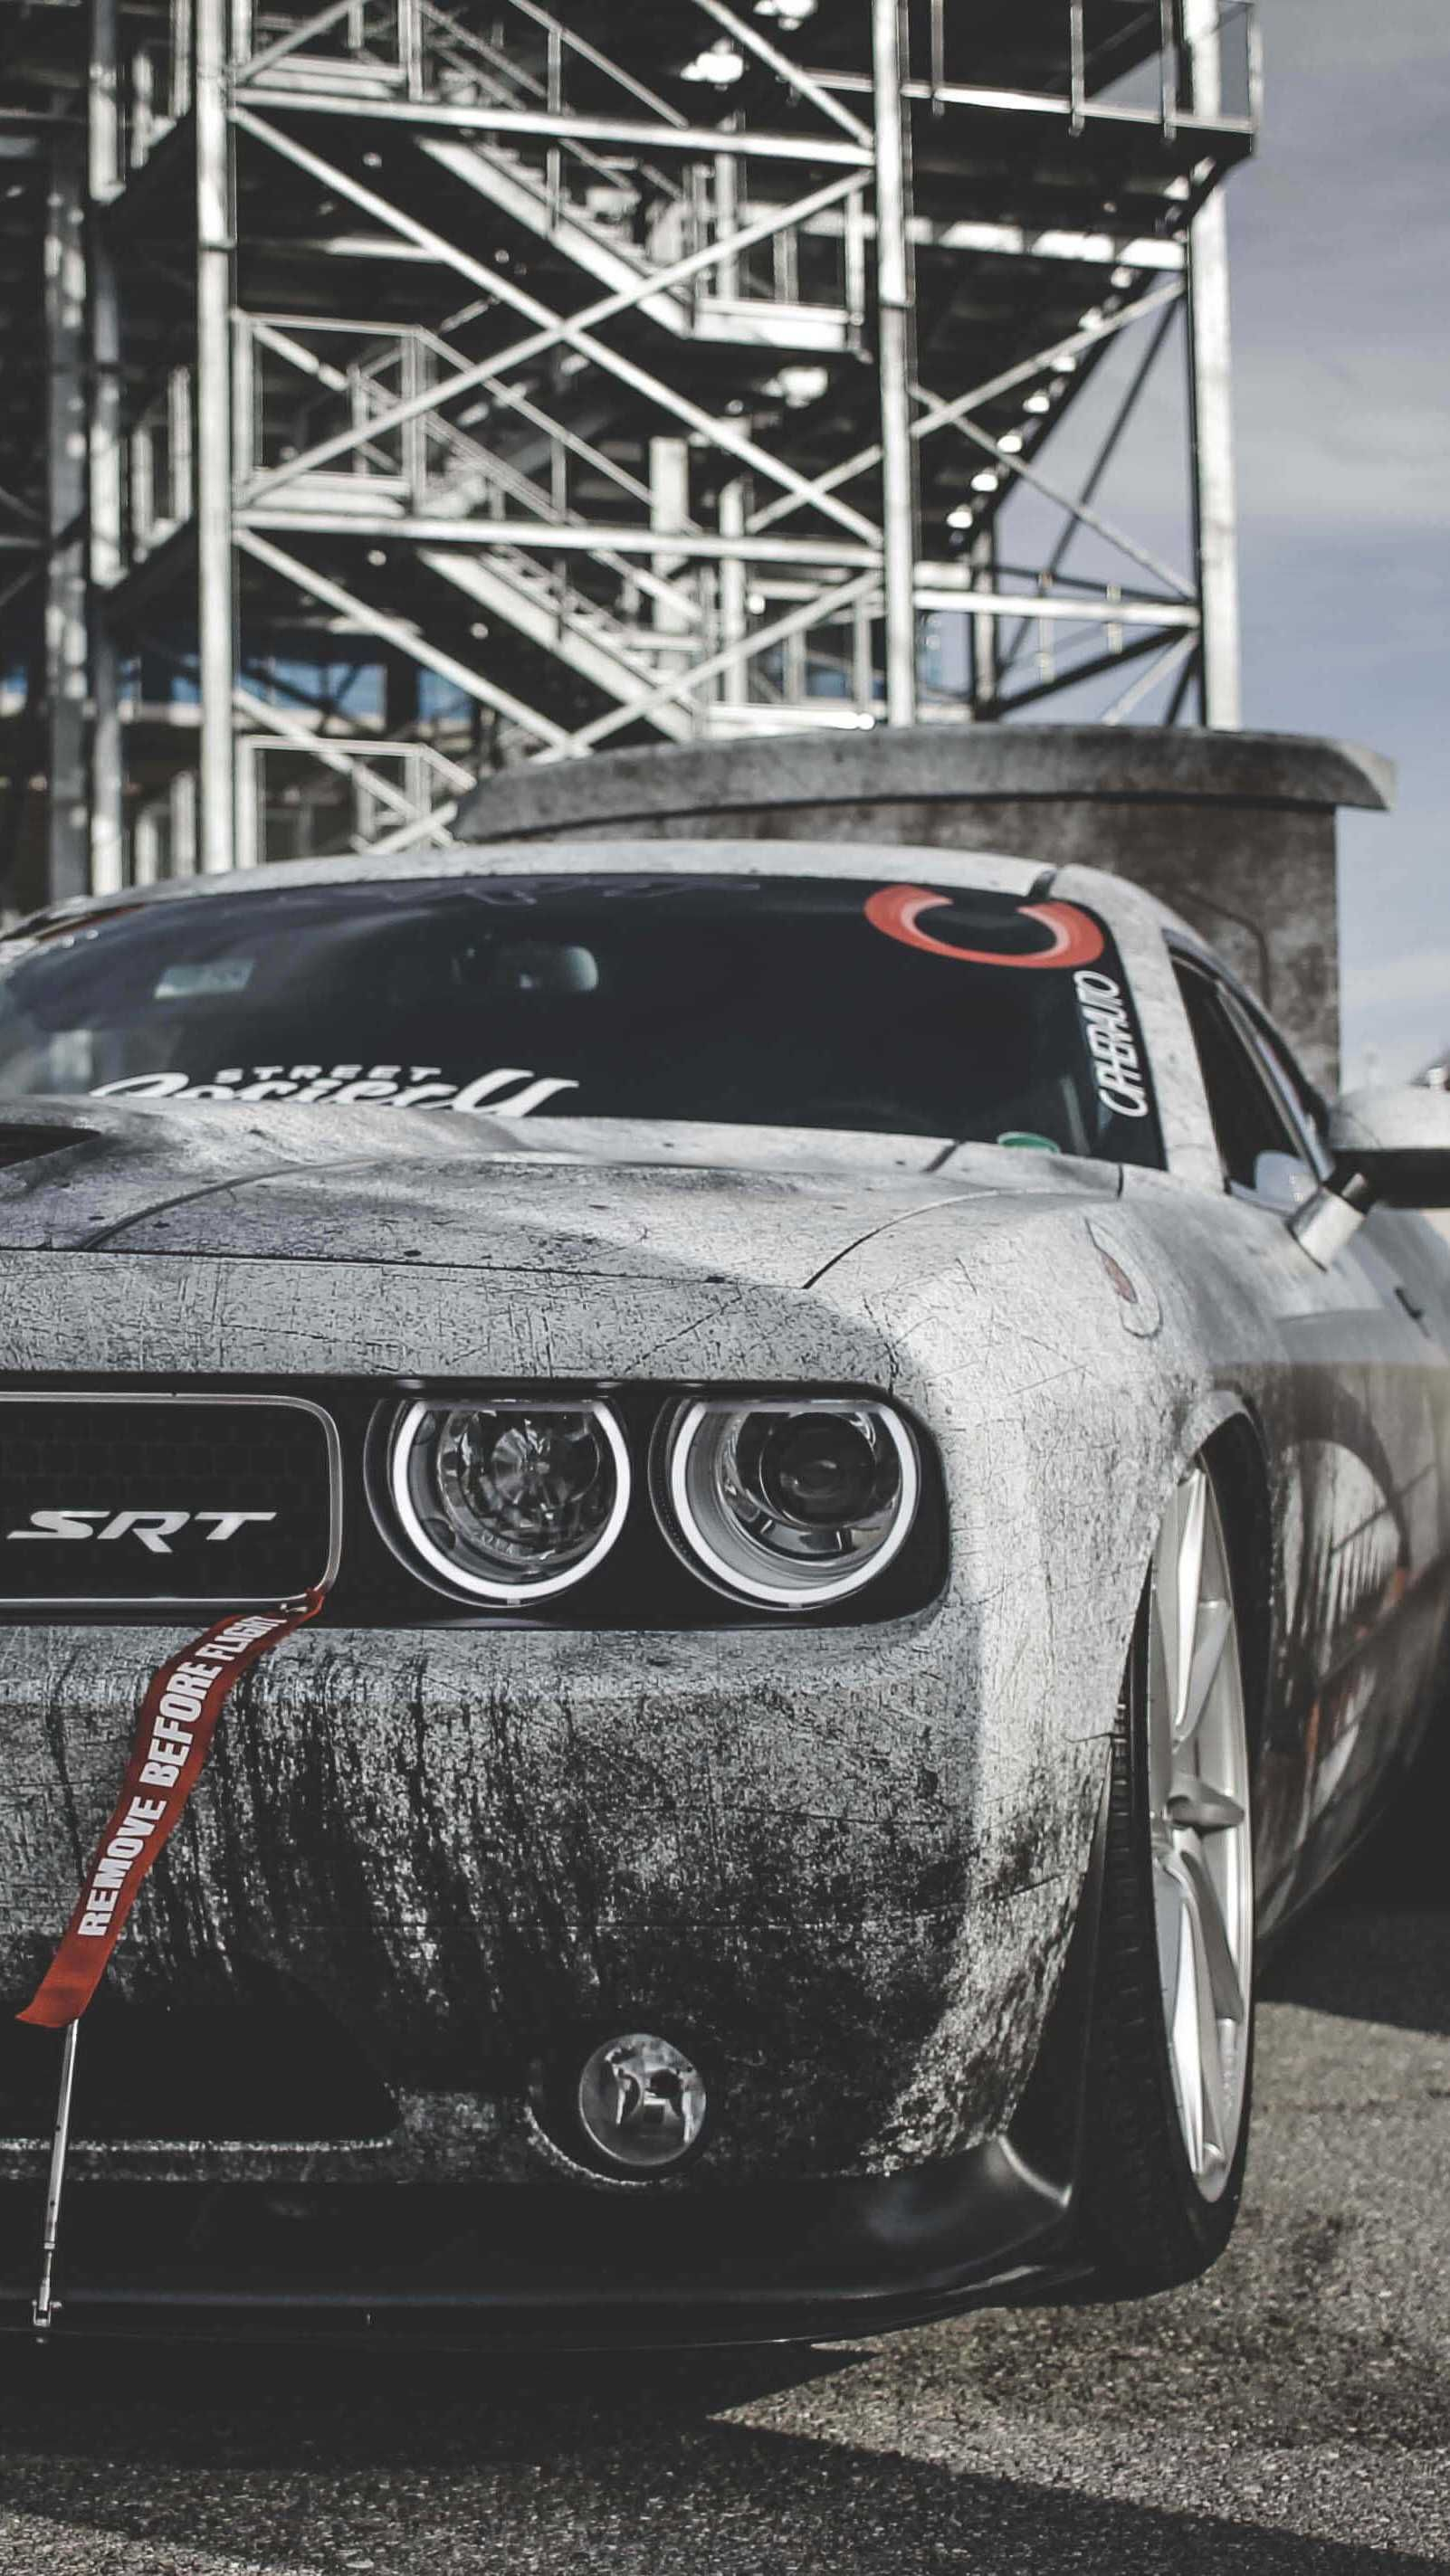 Dodge Challenger Hd Iphone Wallpaper With Images Mustang Cars